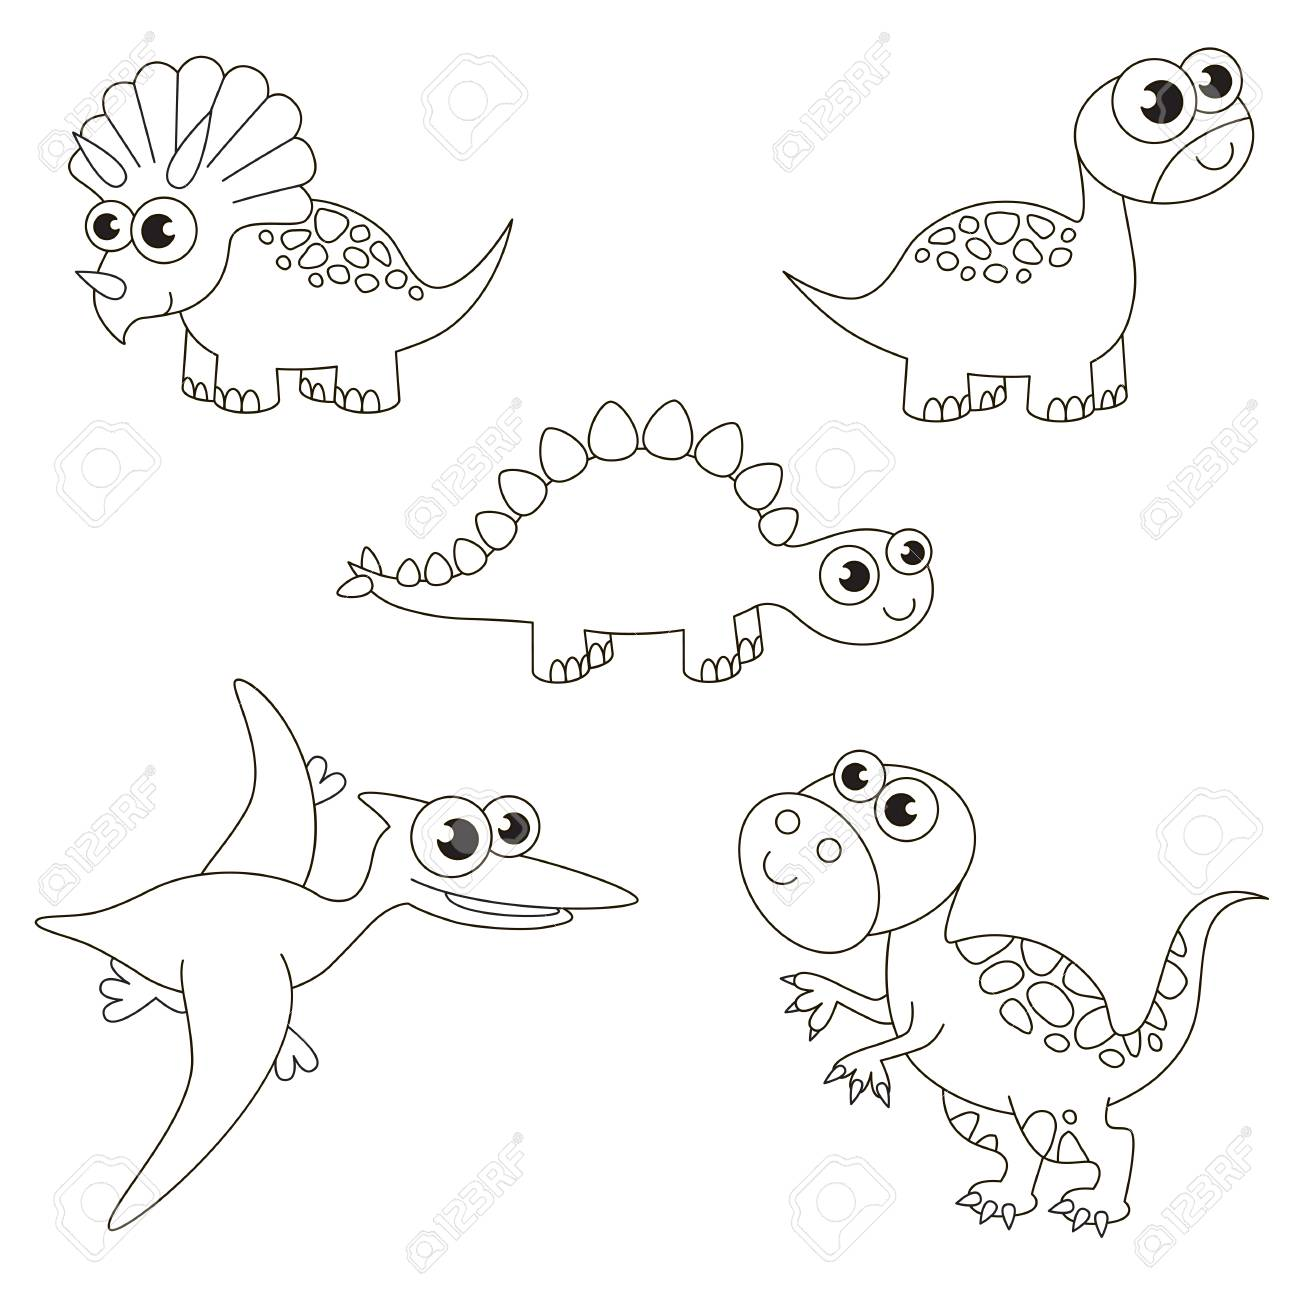 Colorless Tremendous Dinosaurus Dino Set To Be Colored The Big